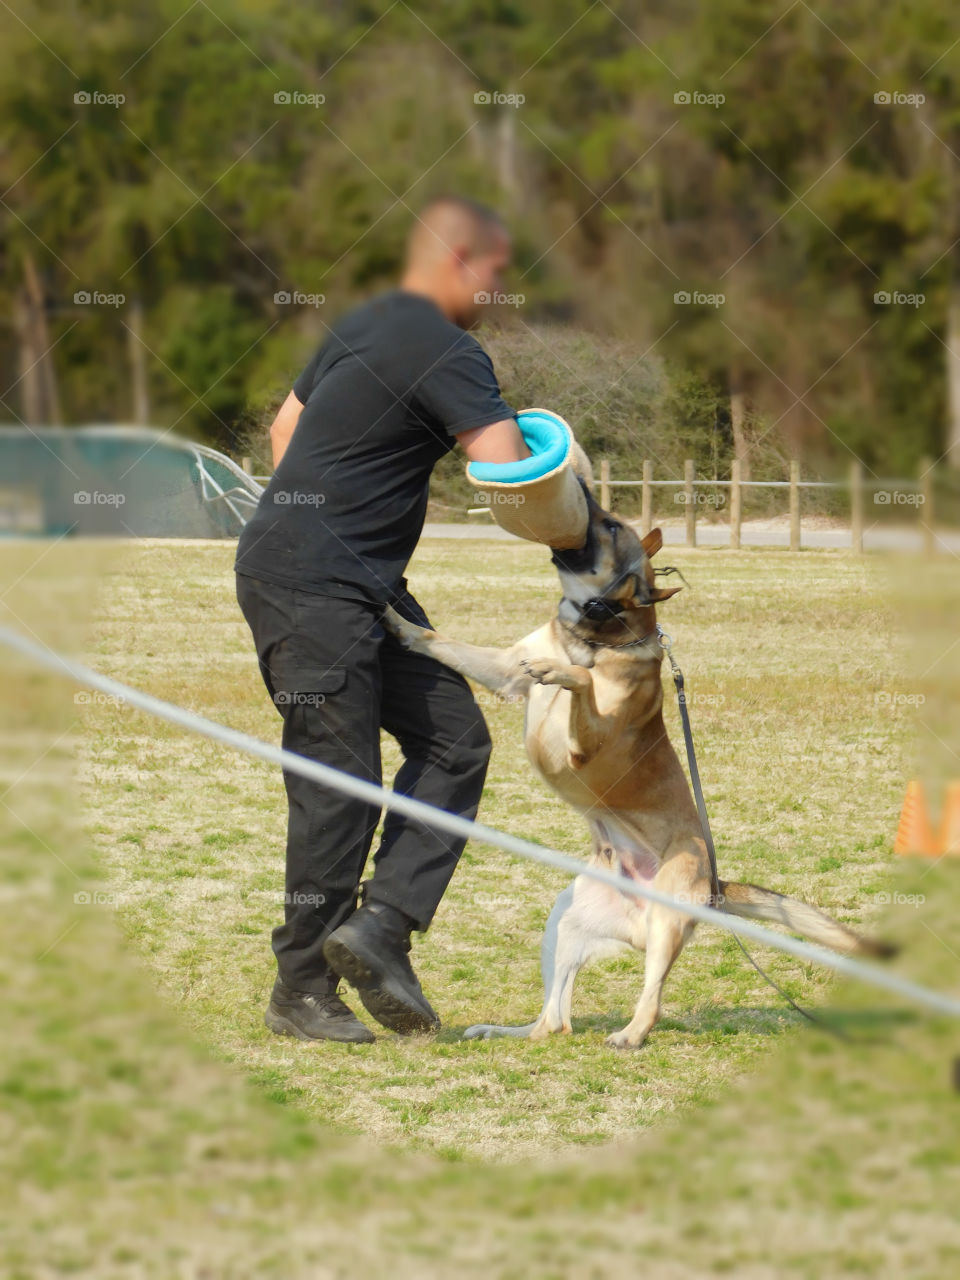 K9 dogs and their handlers prepare for their annual certification as they demonstrate their tactics!